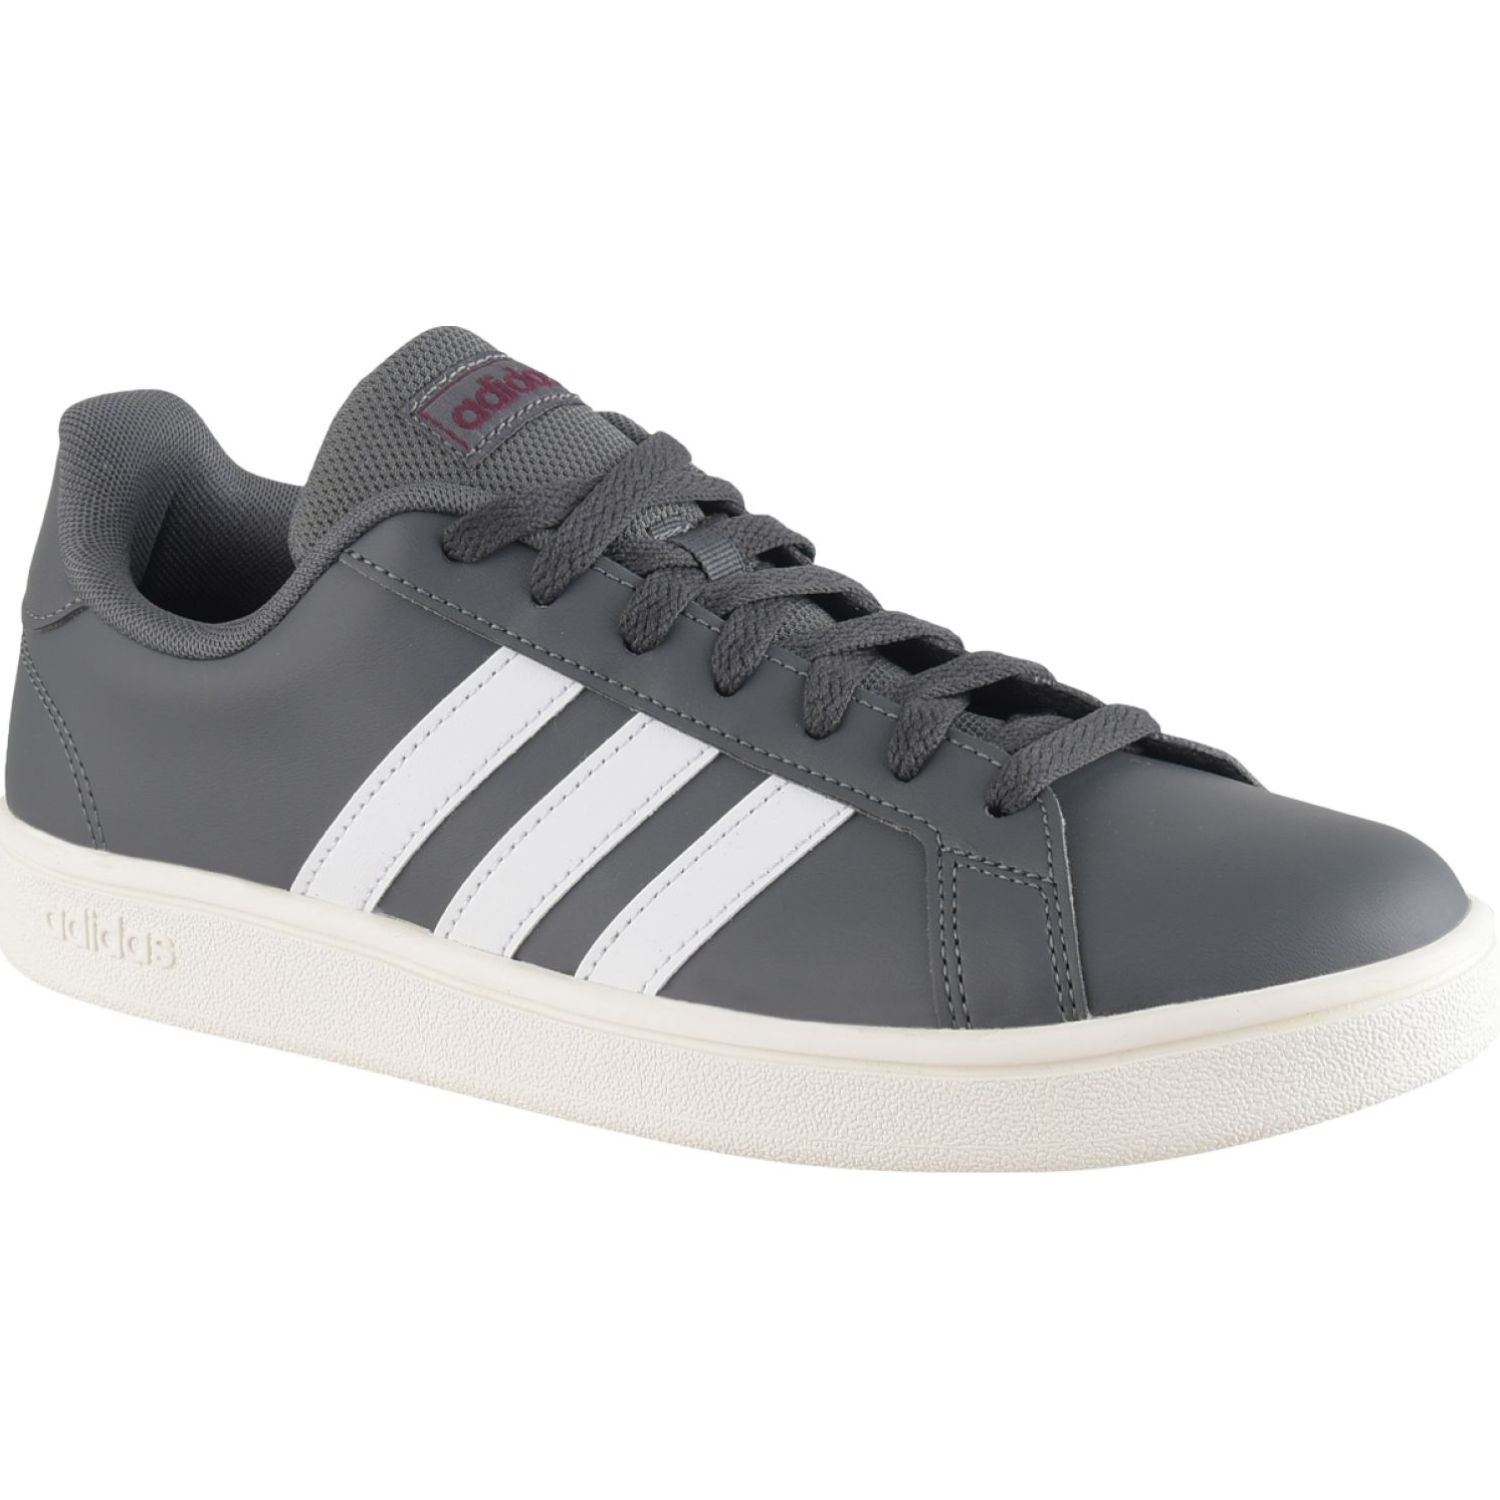 Adidas Grand Court Base Gris / blanco Tennisy deportes con raqueta